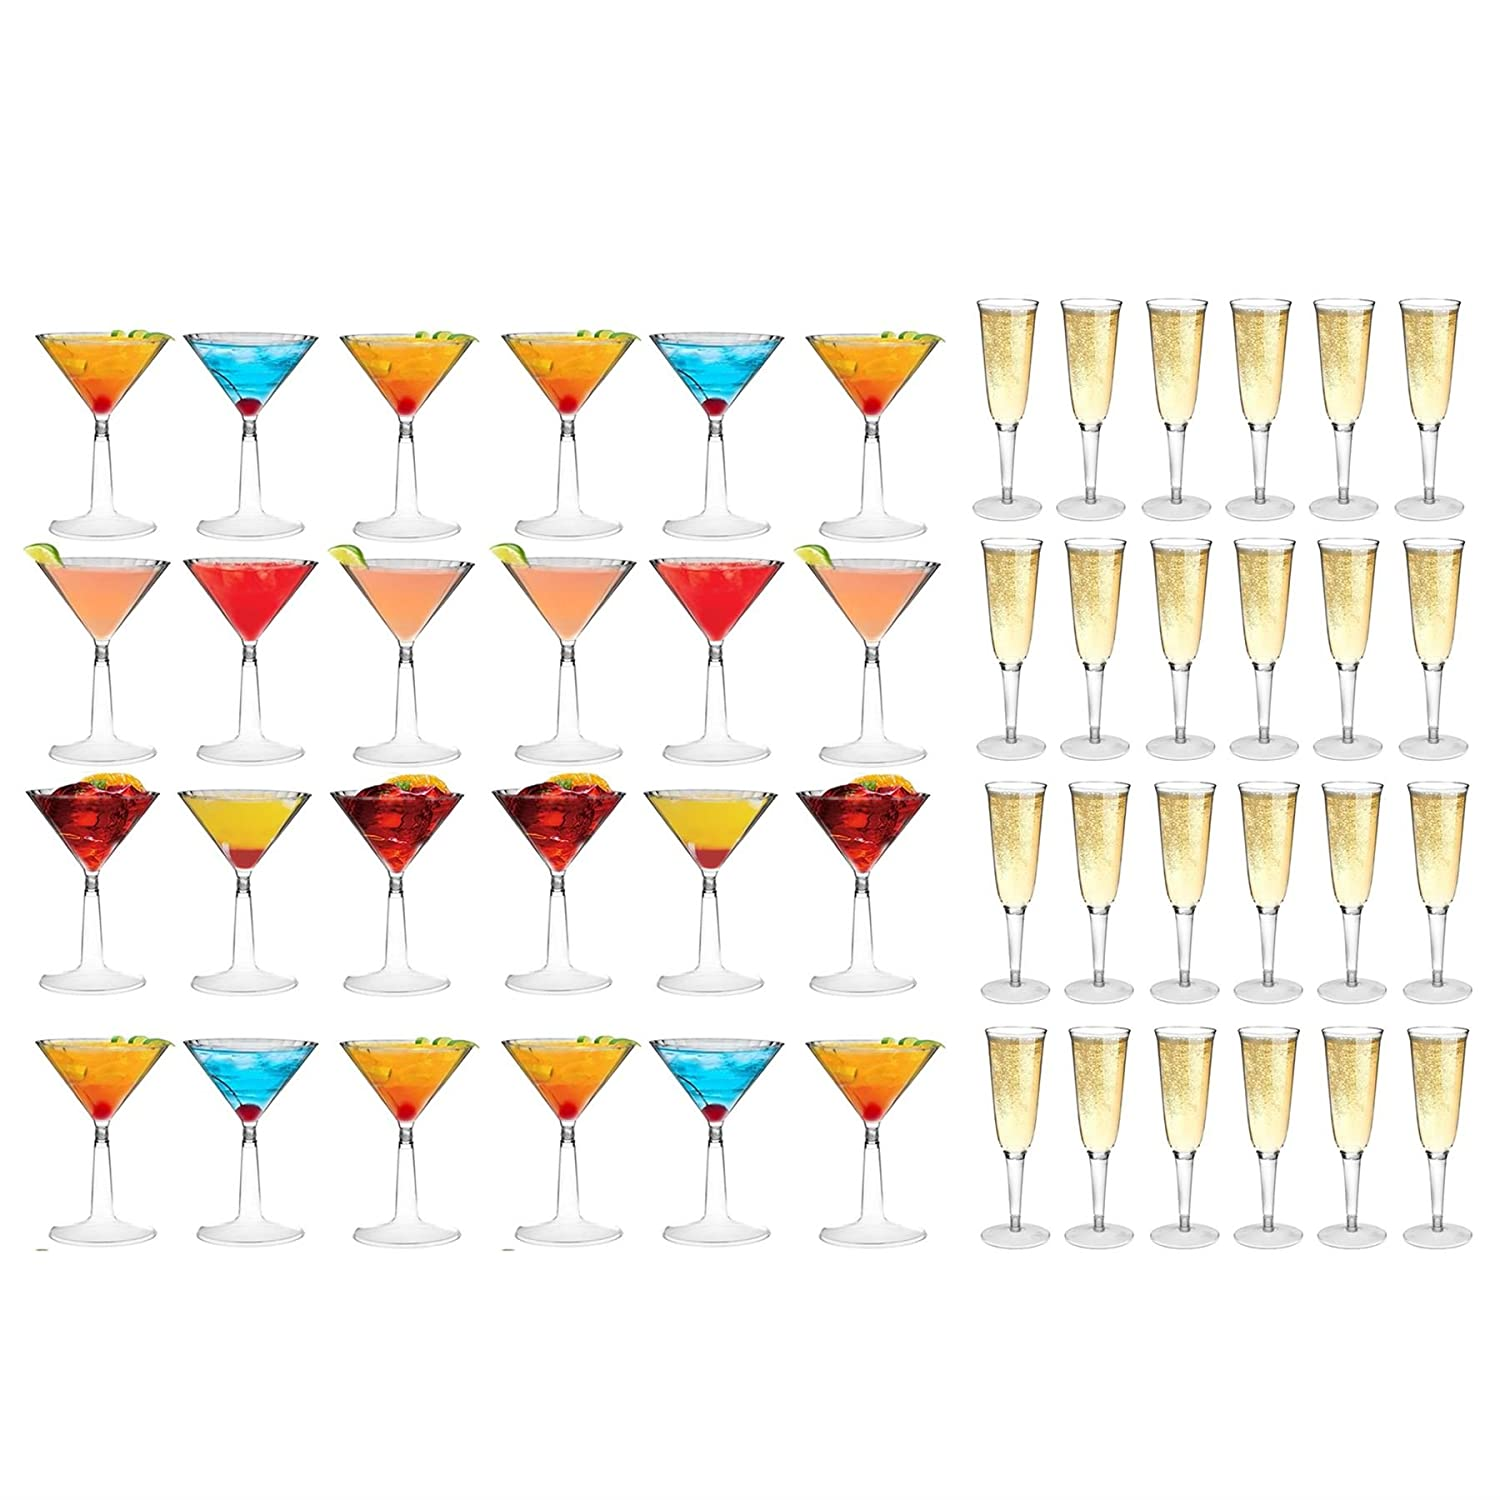 Plastic Cocktail Martini Glasses and Champagne Outdoor Flutes - 170ml / 200ml - Set of 48 Rink Drink